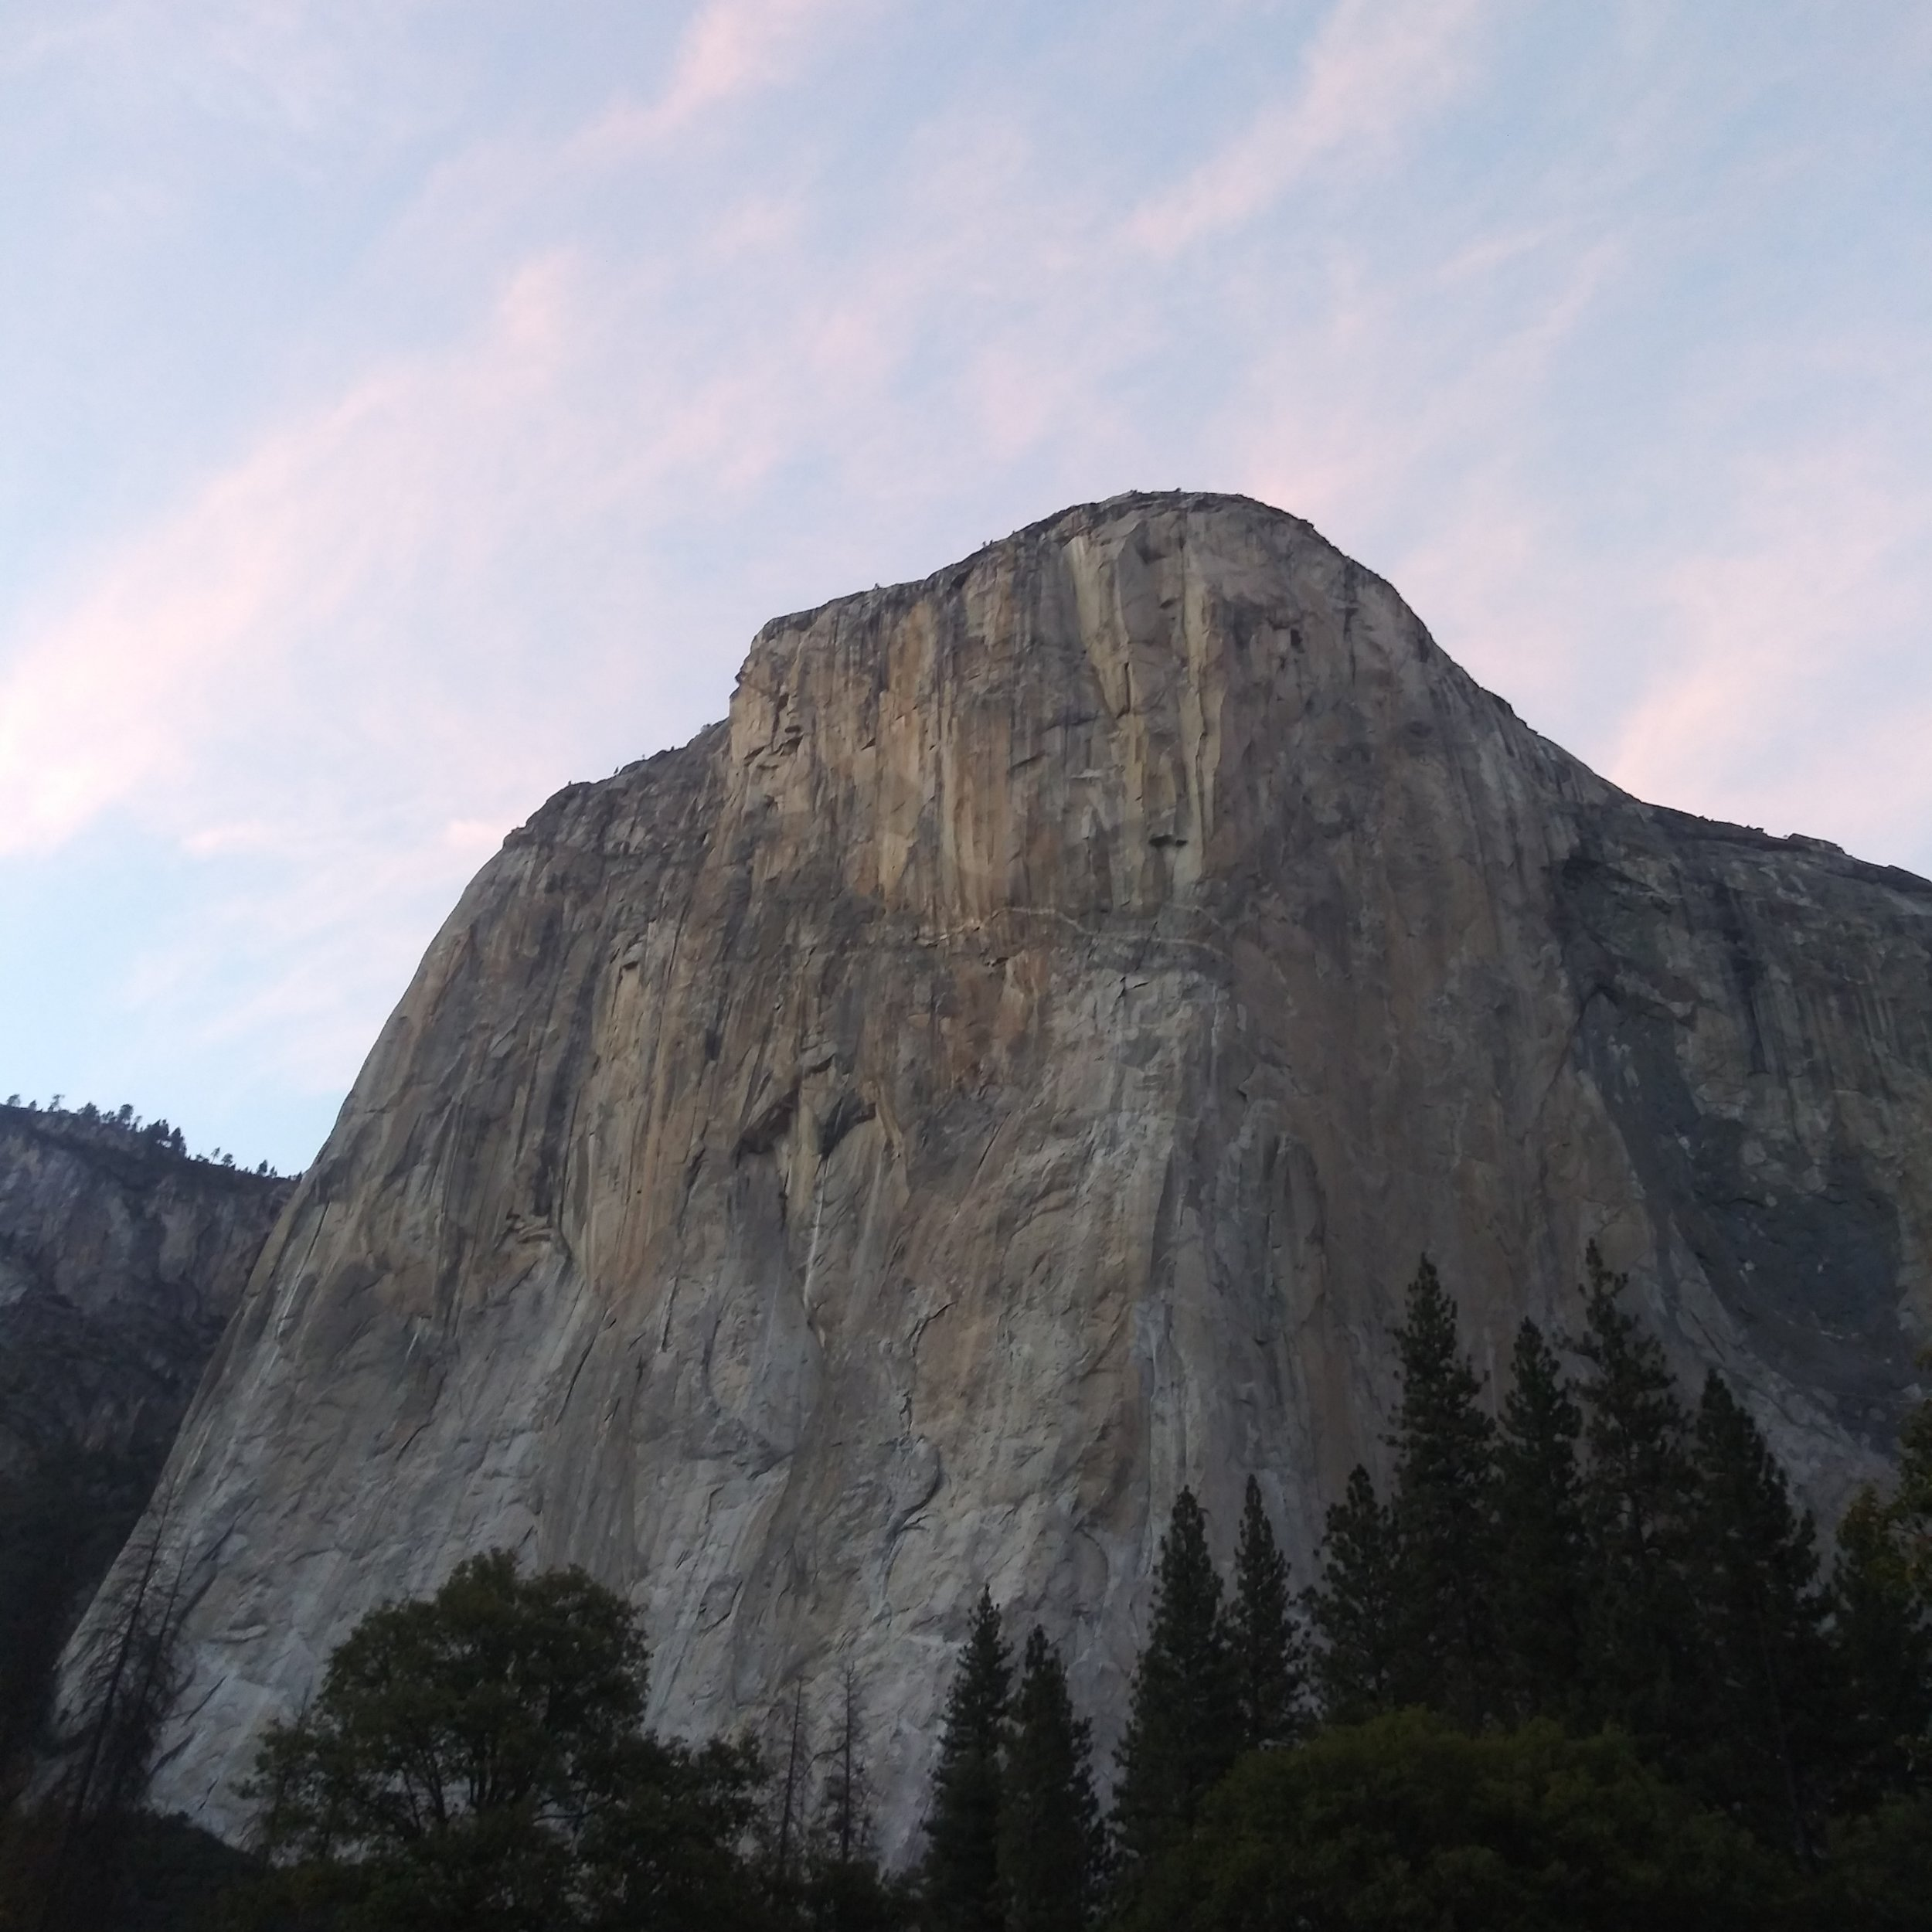 El Cap at dusk, not a bad view for dinner.